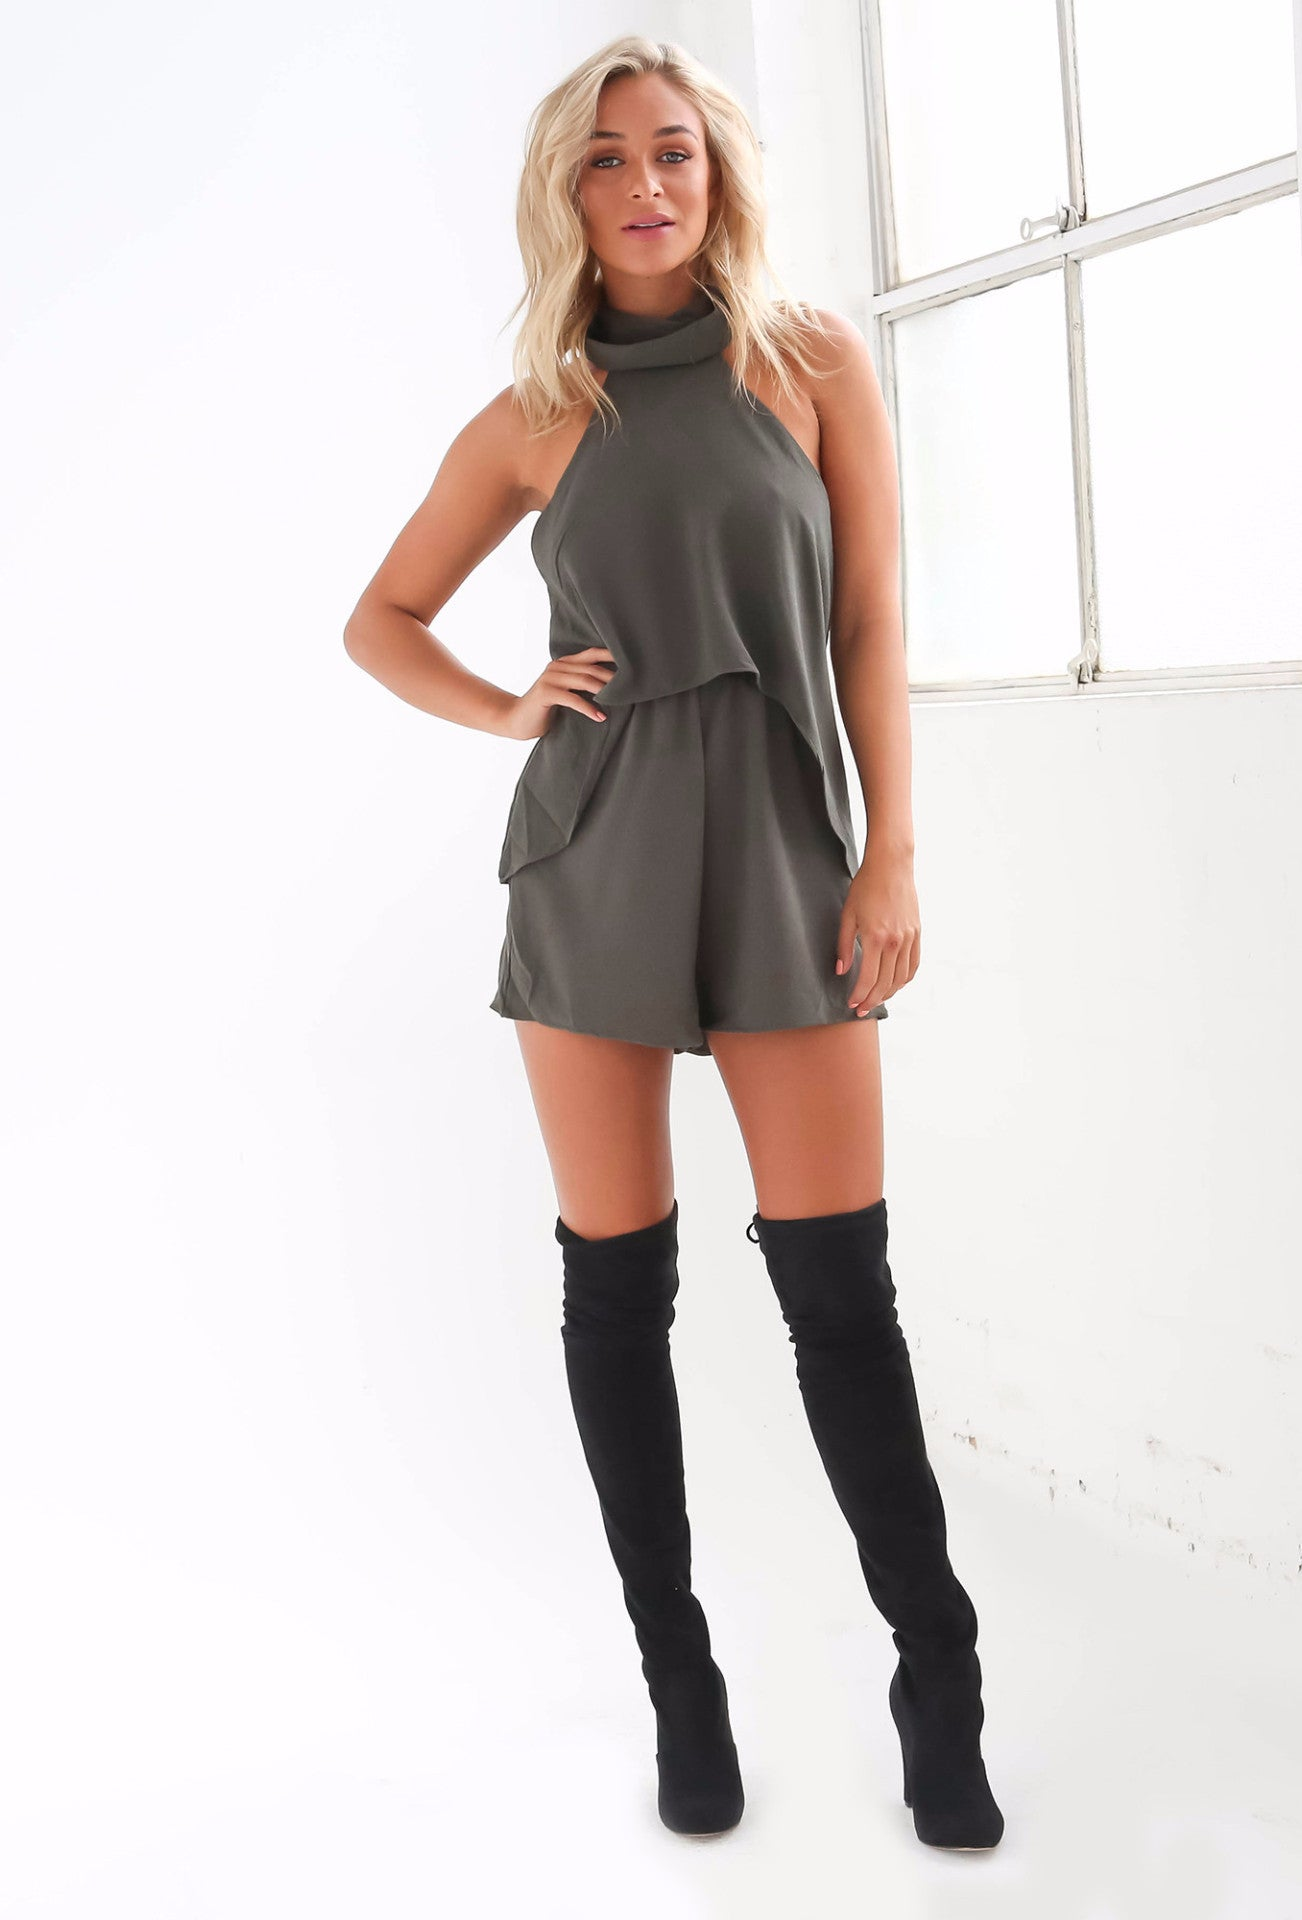 Another Chance Playsuit - Khaki - Lovecy - 3